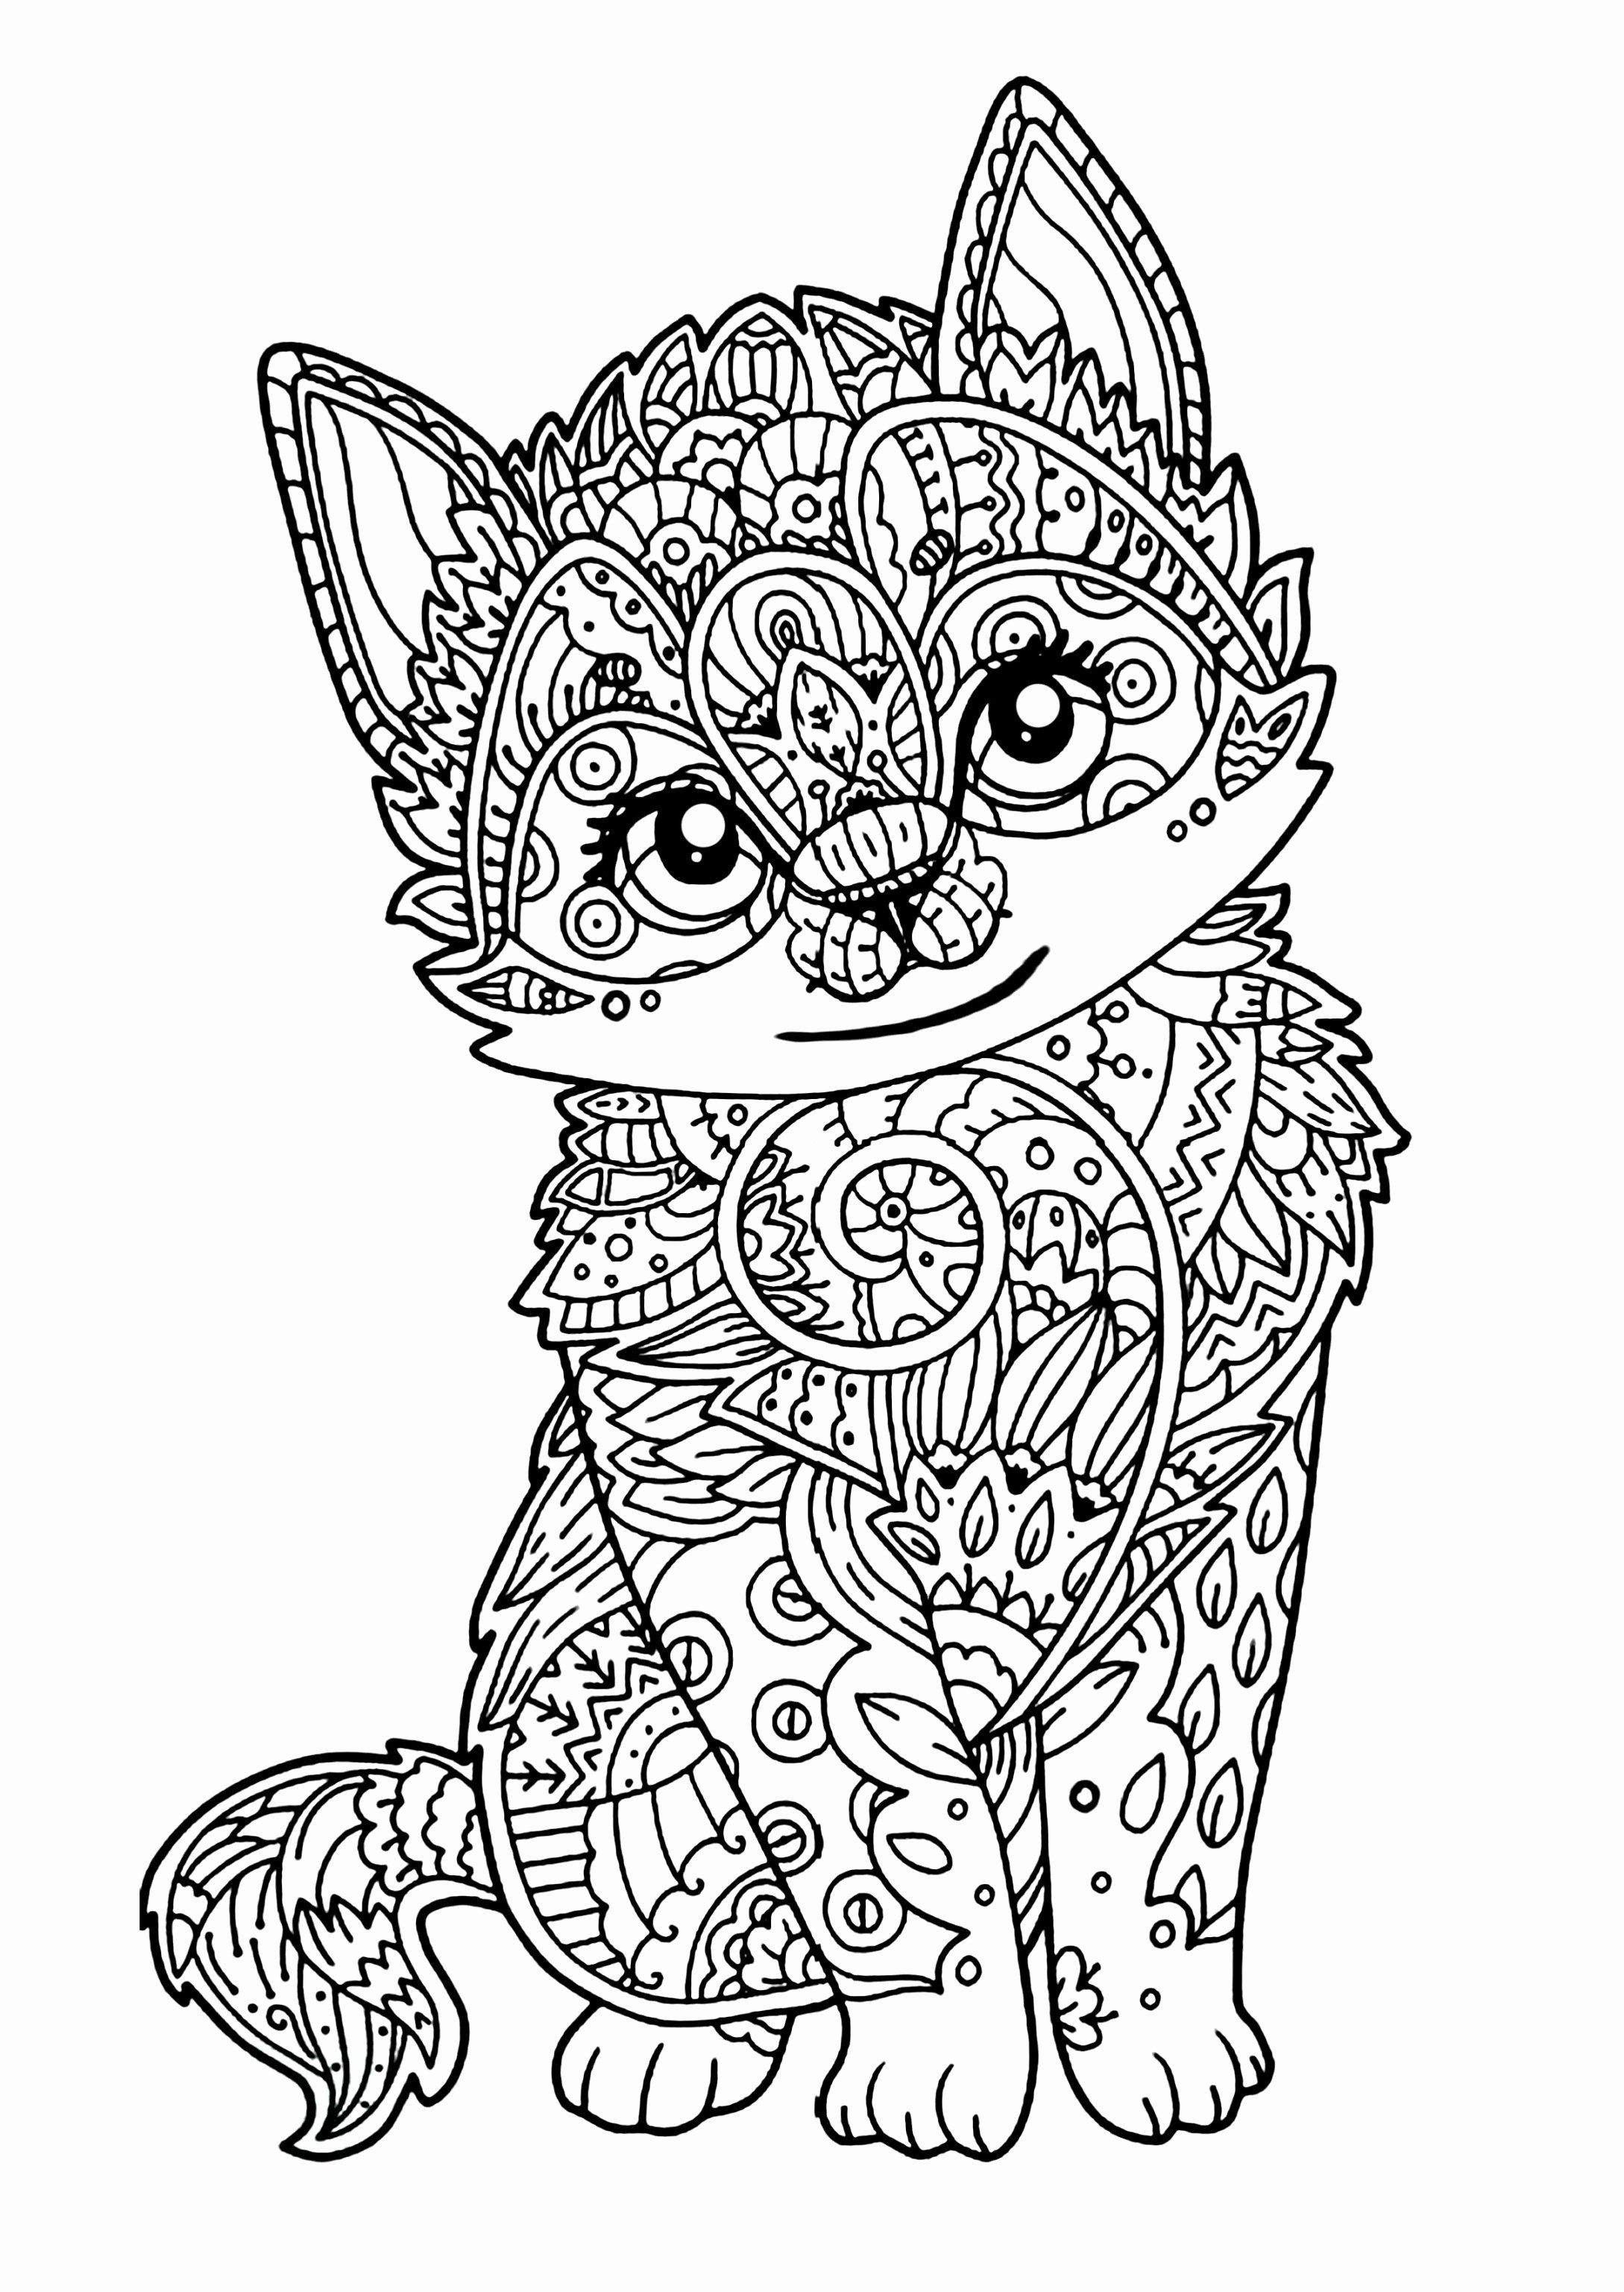 Hard Coloring Sheets For Adults Awesome 51 Most Wonderful Cute Kawaii Animal Coloring Pages In 2020 Cat Coloring Book Kittens Coloring Cat Coloring Page